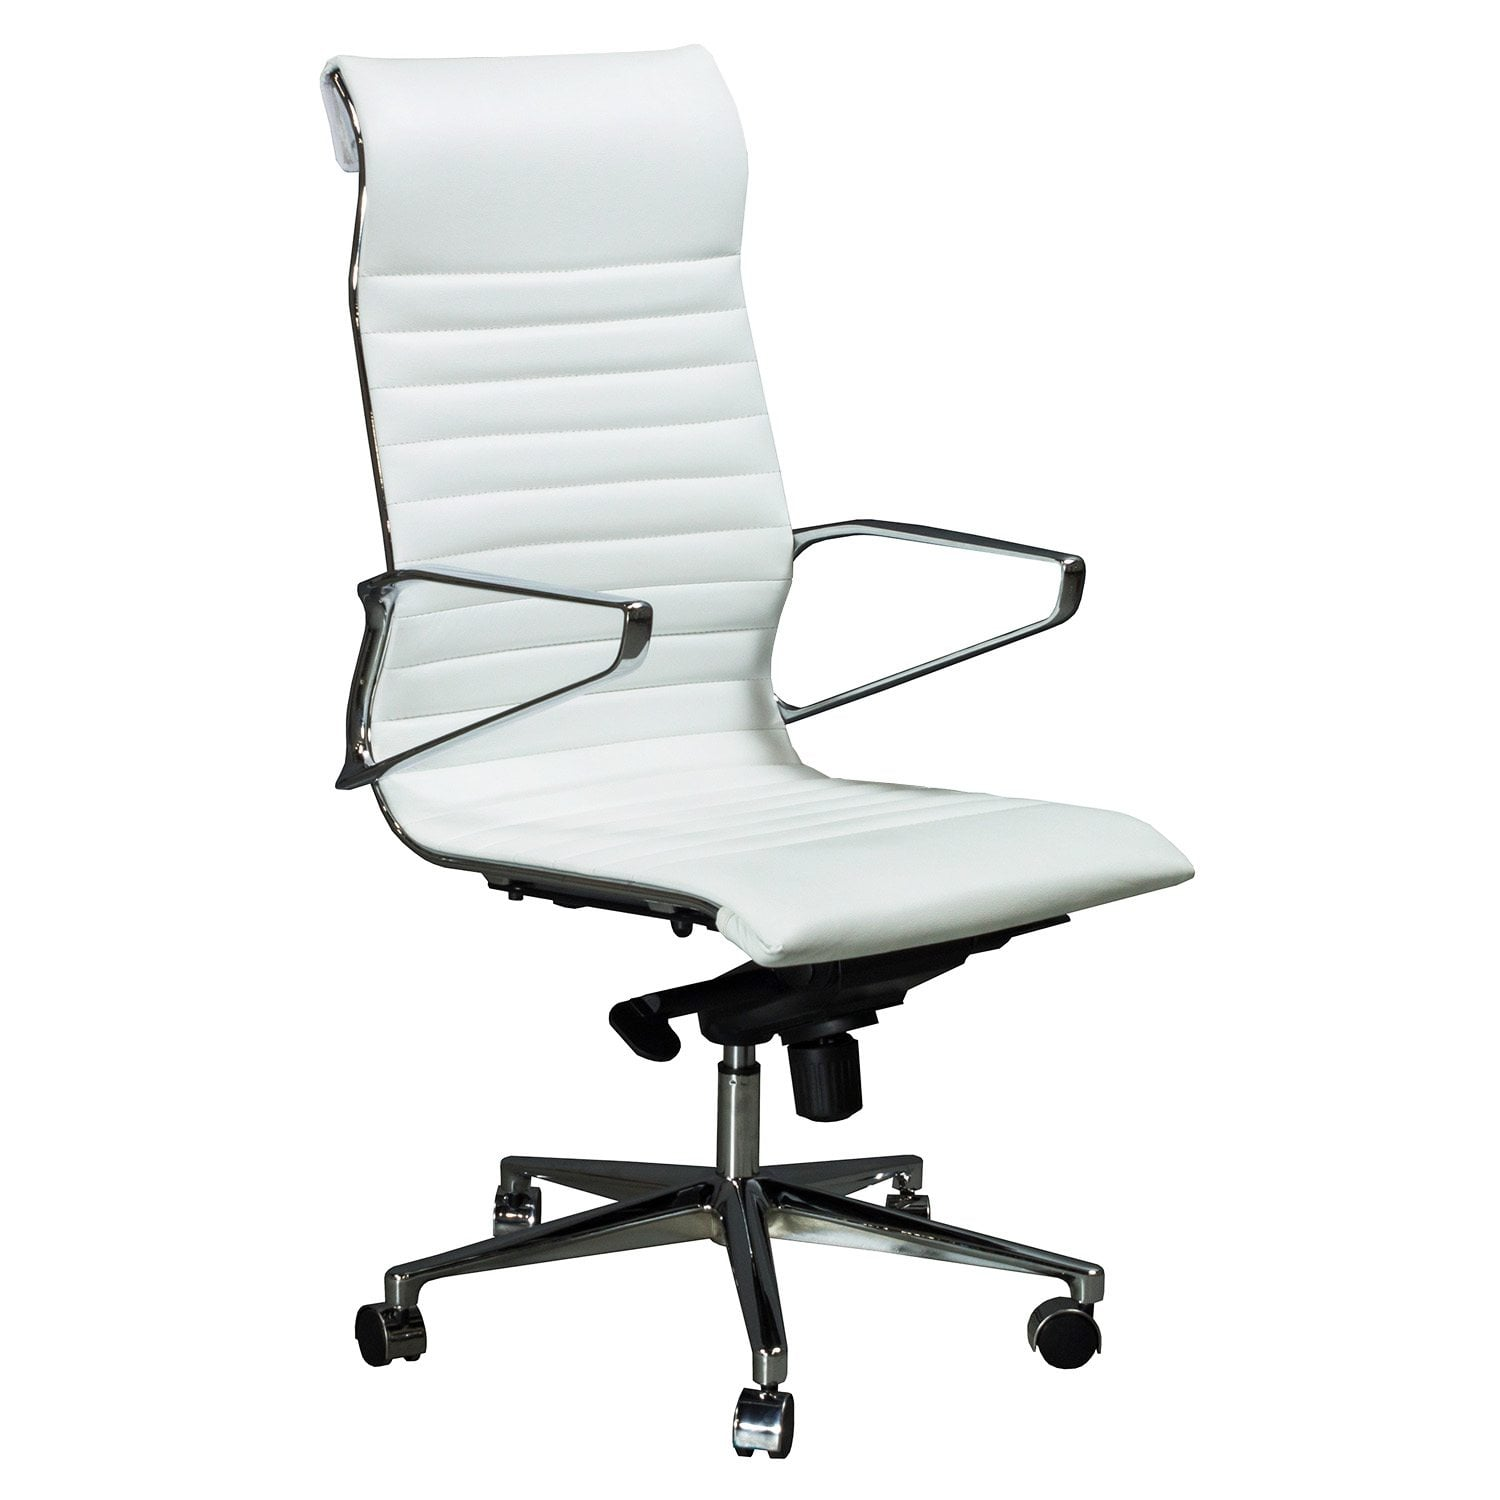 designer executive chair modern waiting room chairs gosit new contemporary leather white